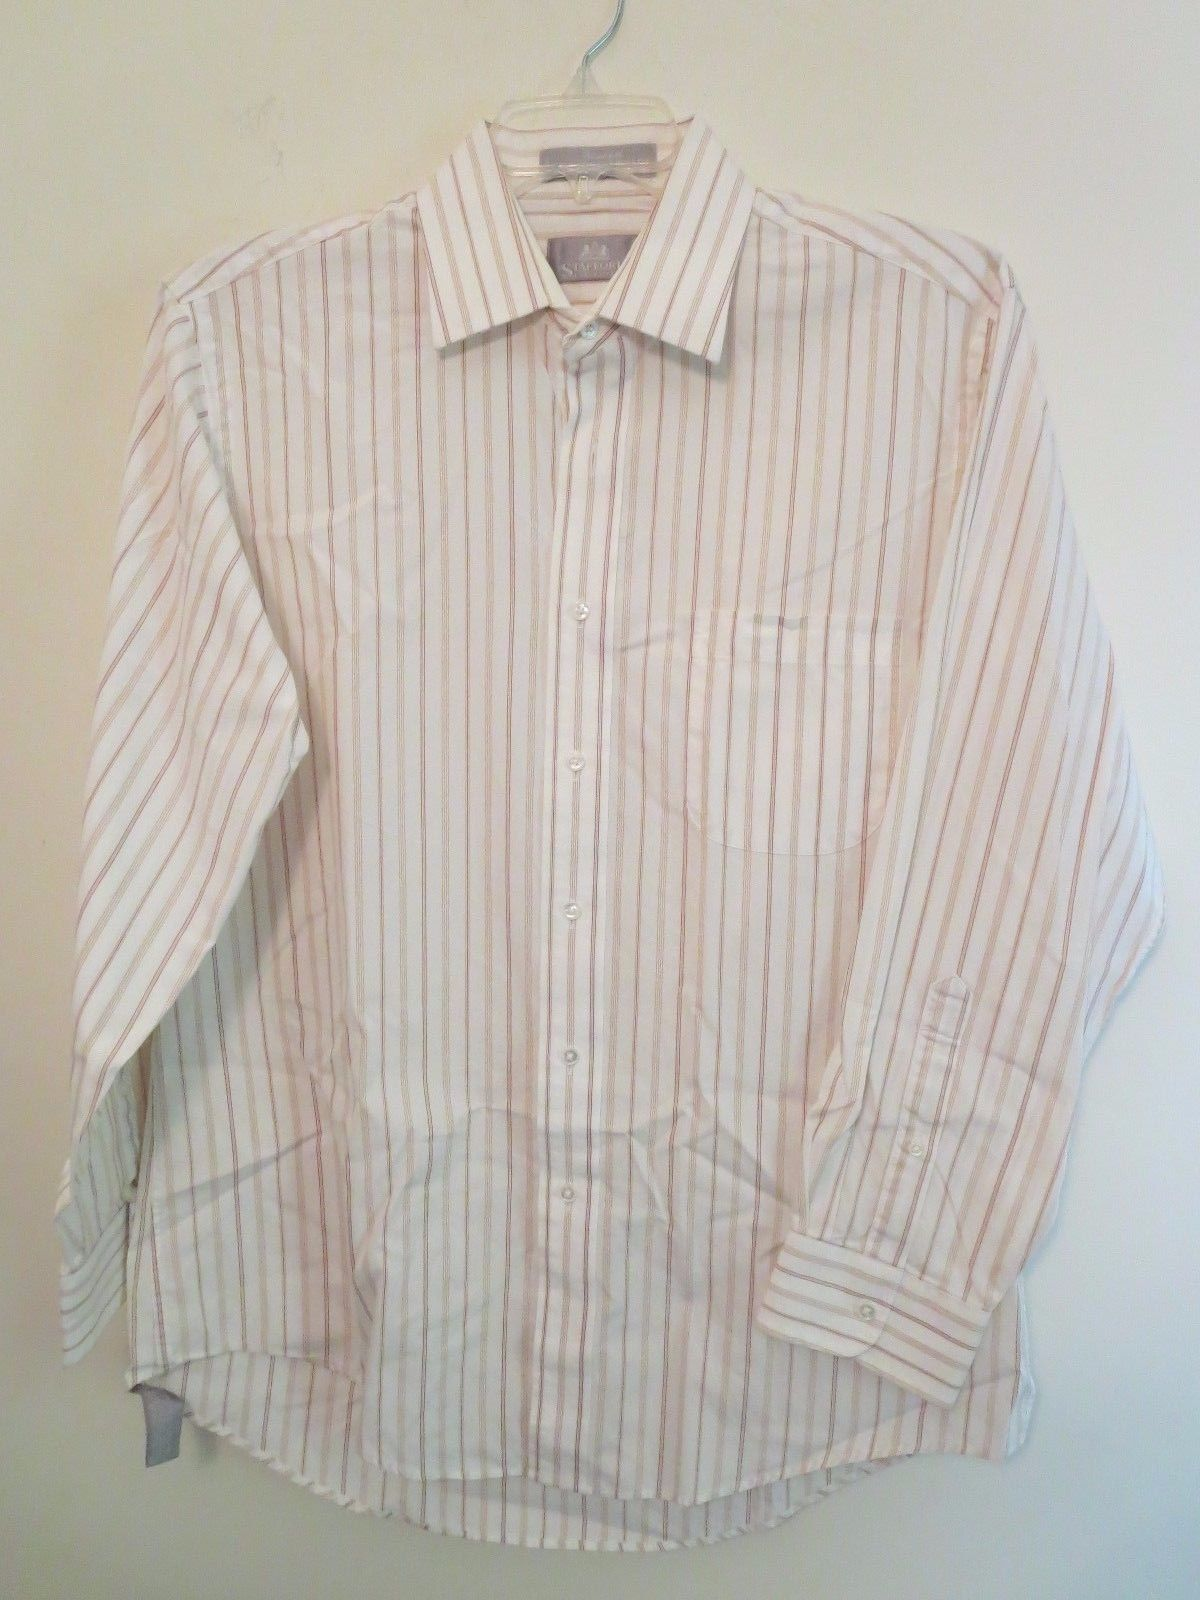 Stafford Men 39 S Size 16 33 Cream Color Pinstripe Shirt 100